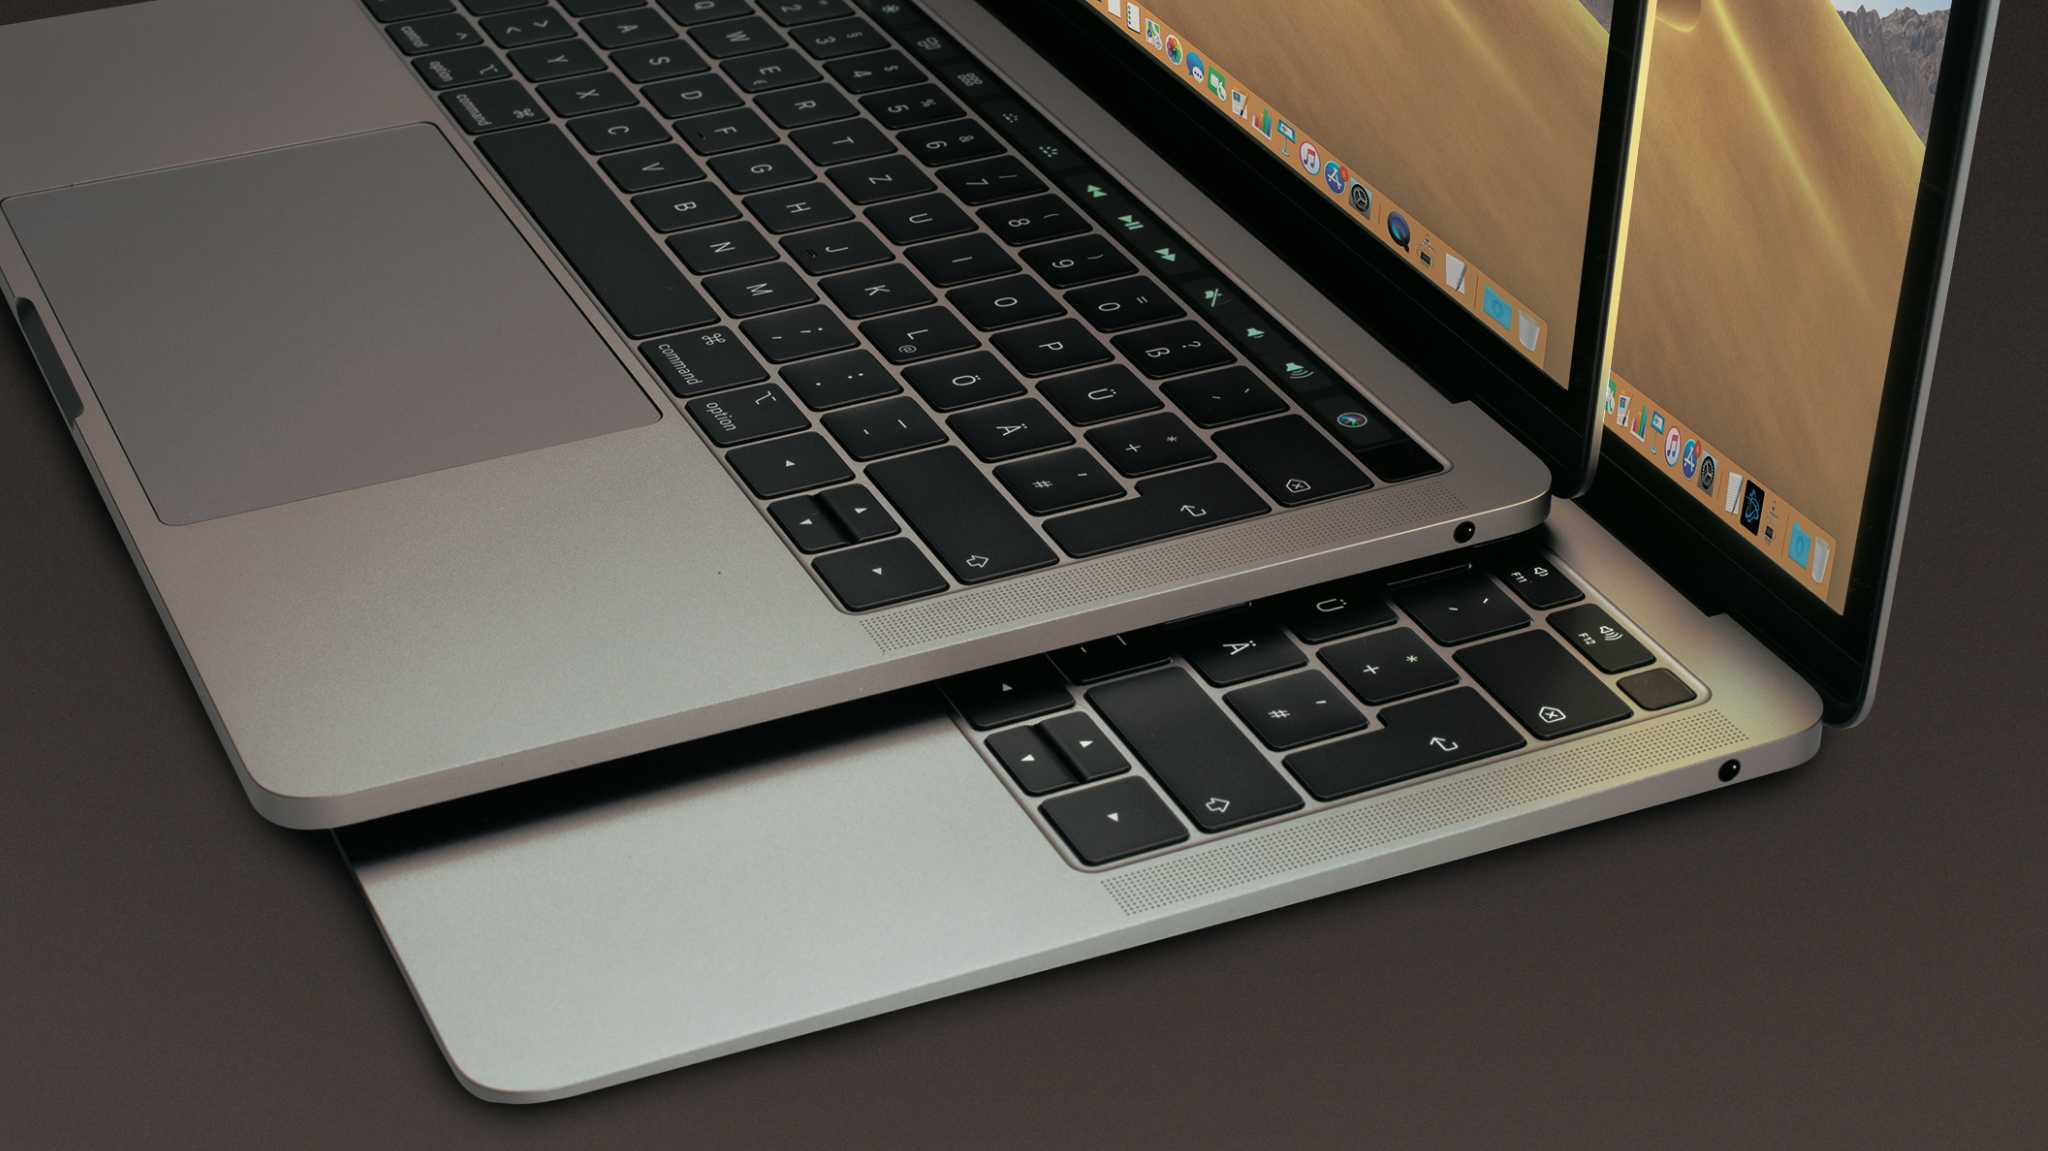 Im Test: MacBook Air vs. MacBook Pro 13""